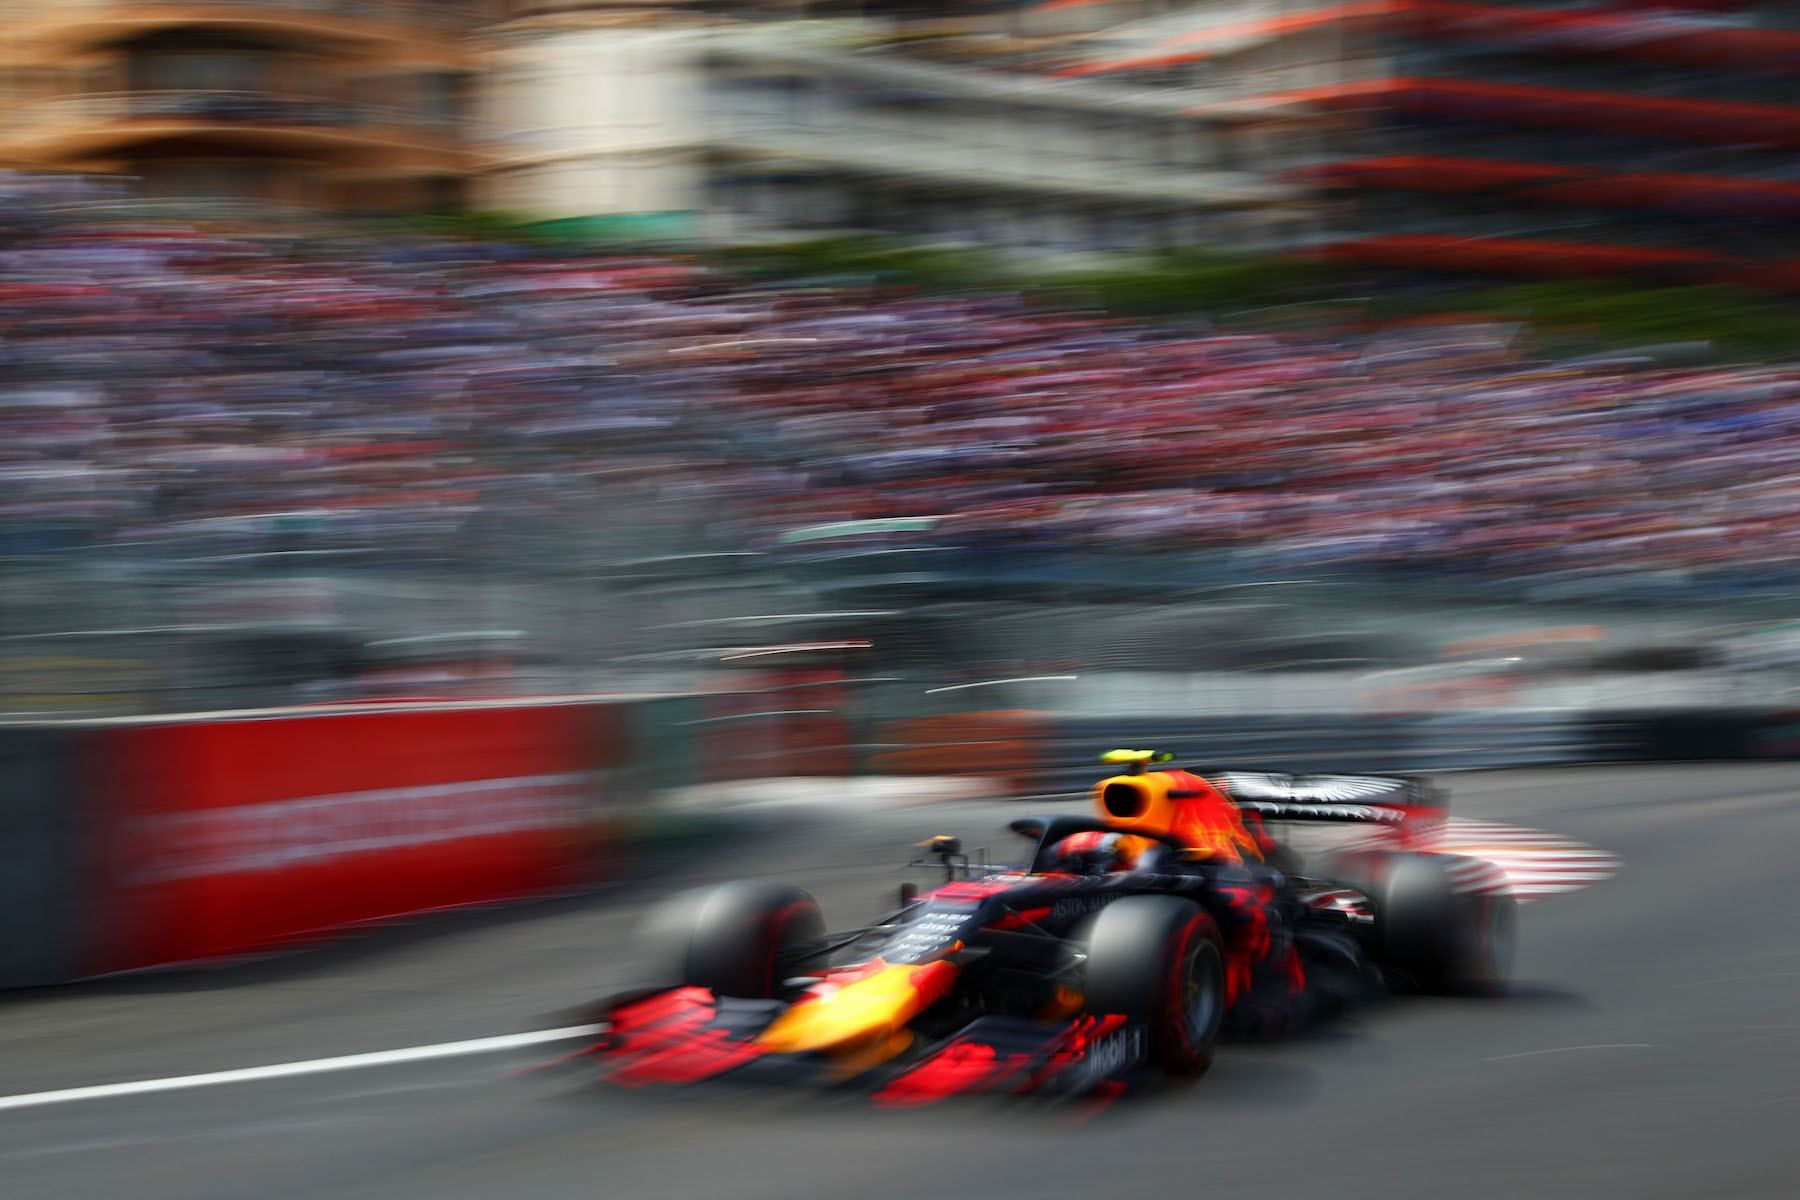 3 2019 Monaco GP SUNDAY 17.jpg